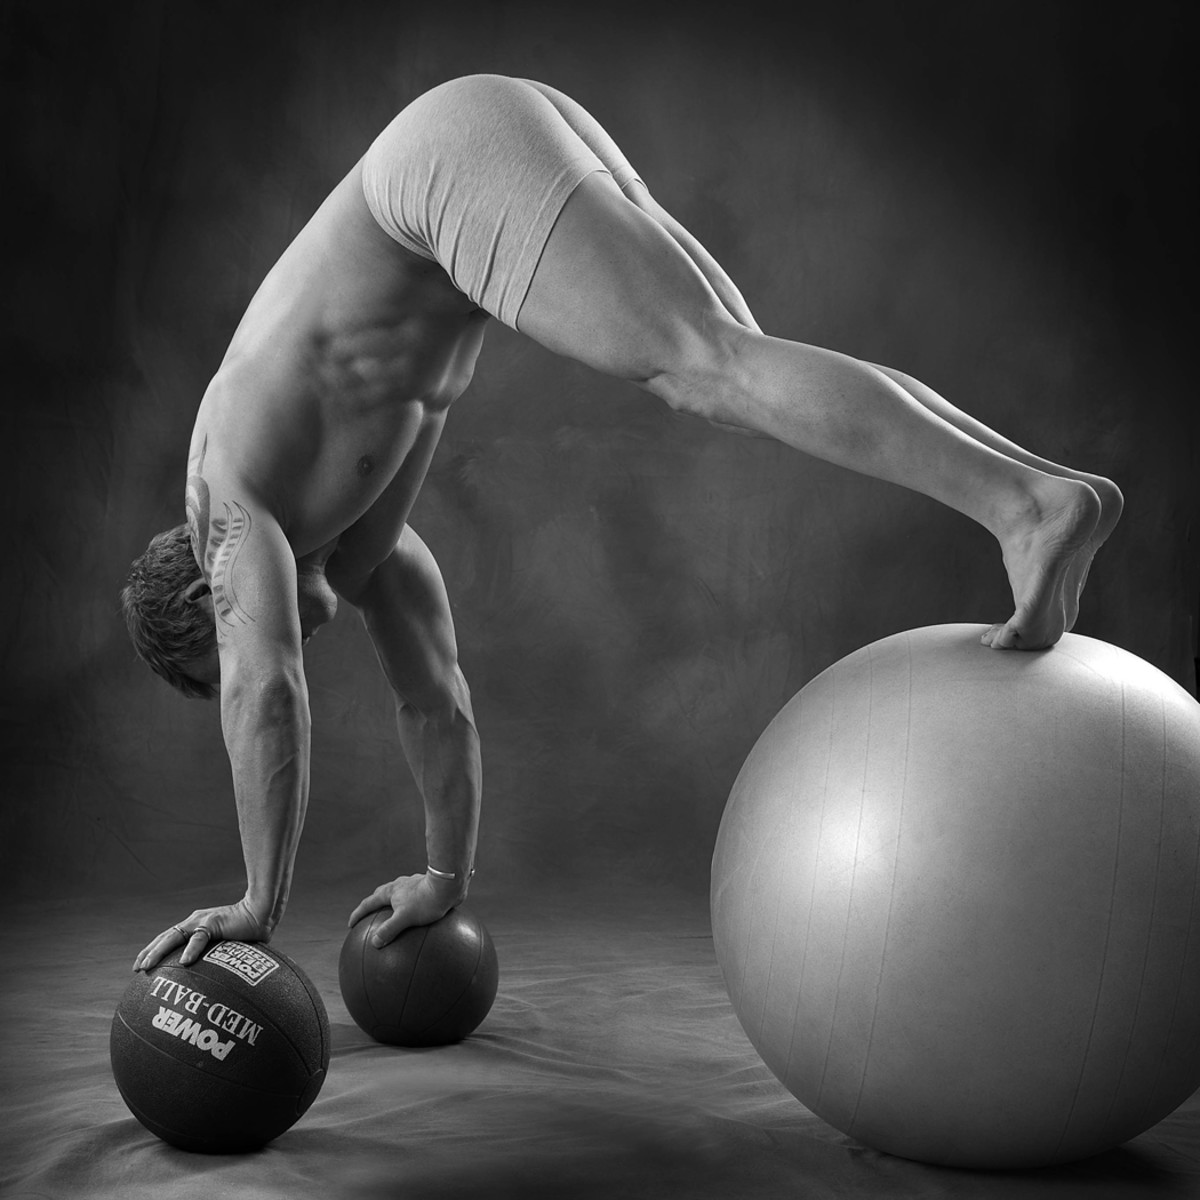 Author doing a push up/hip flexion on ball with hands on medicine ball. This is an advanced exercise that challenges the core muscles as well as the stabilizer muscles around the shoulder joint complex.